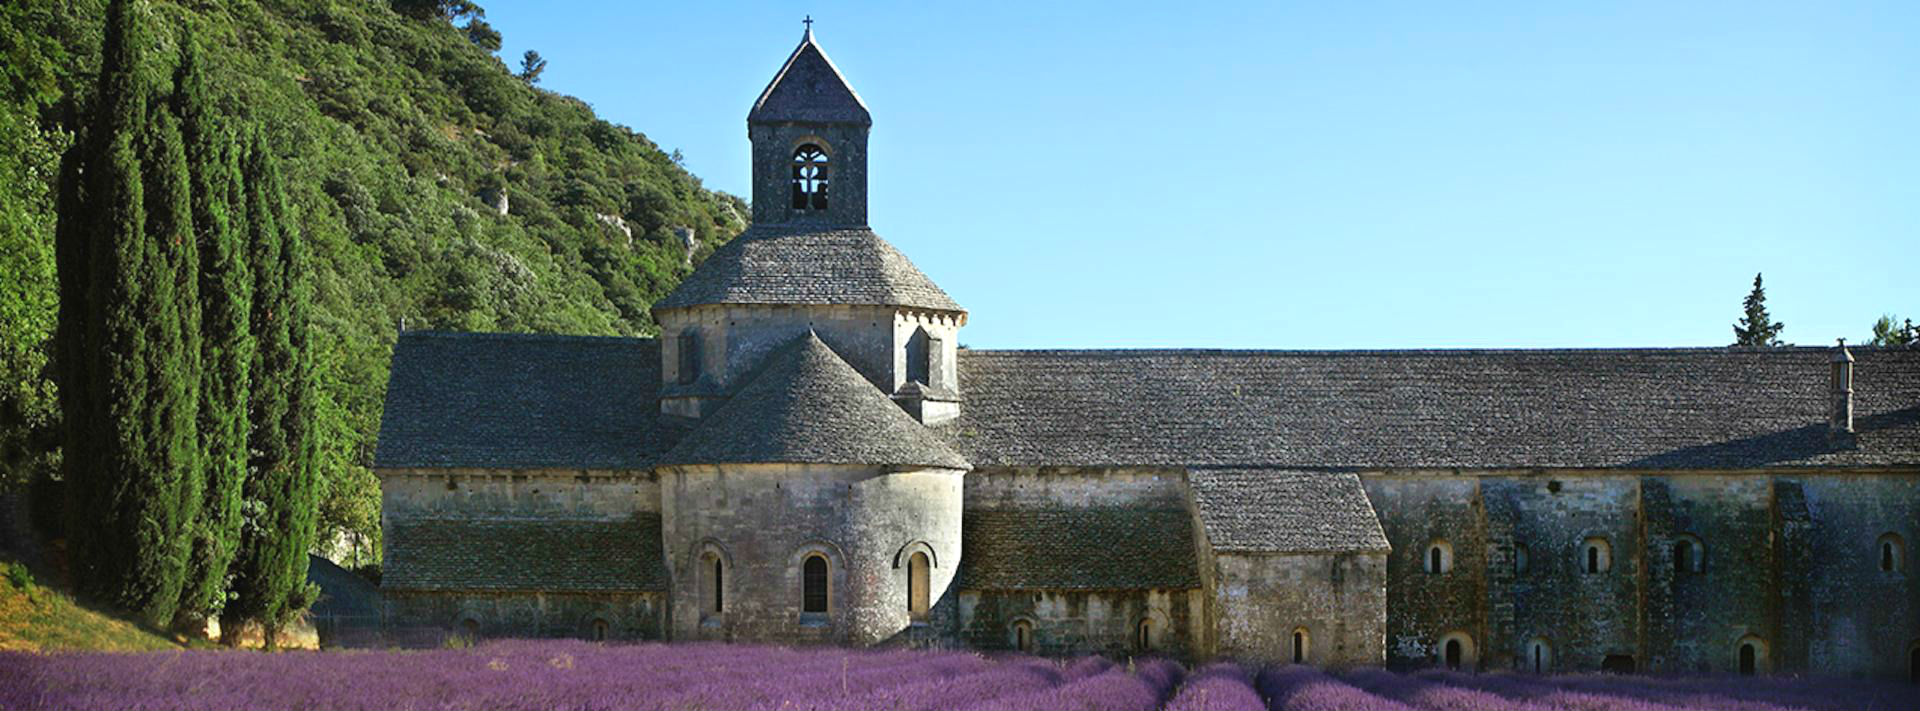 Sénanque, jeopardized abbey